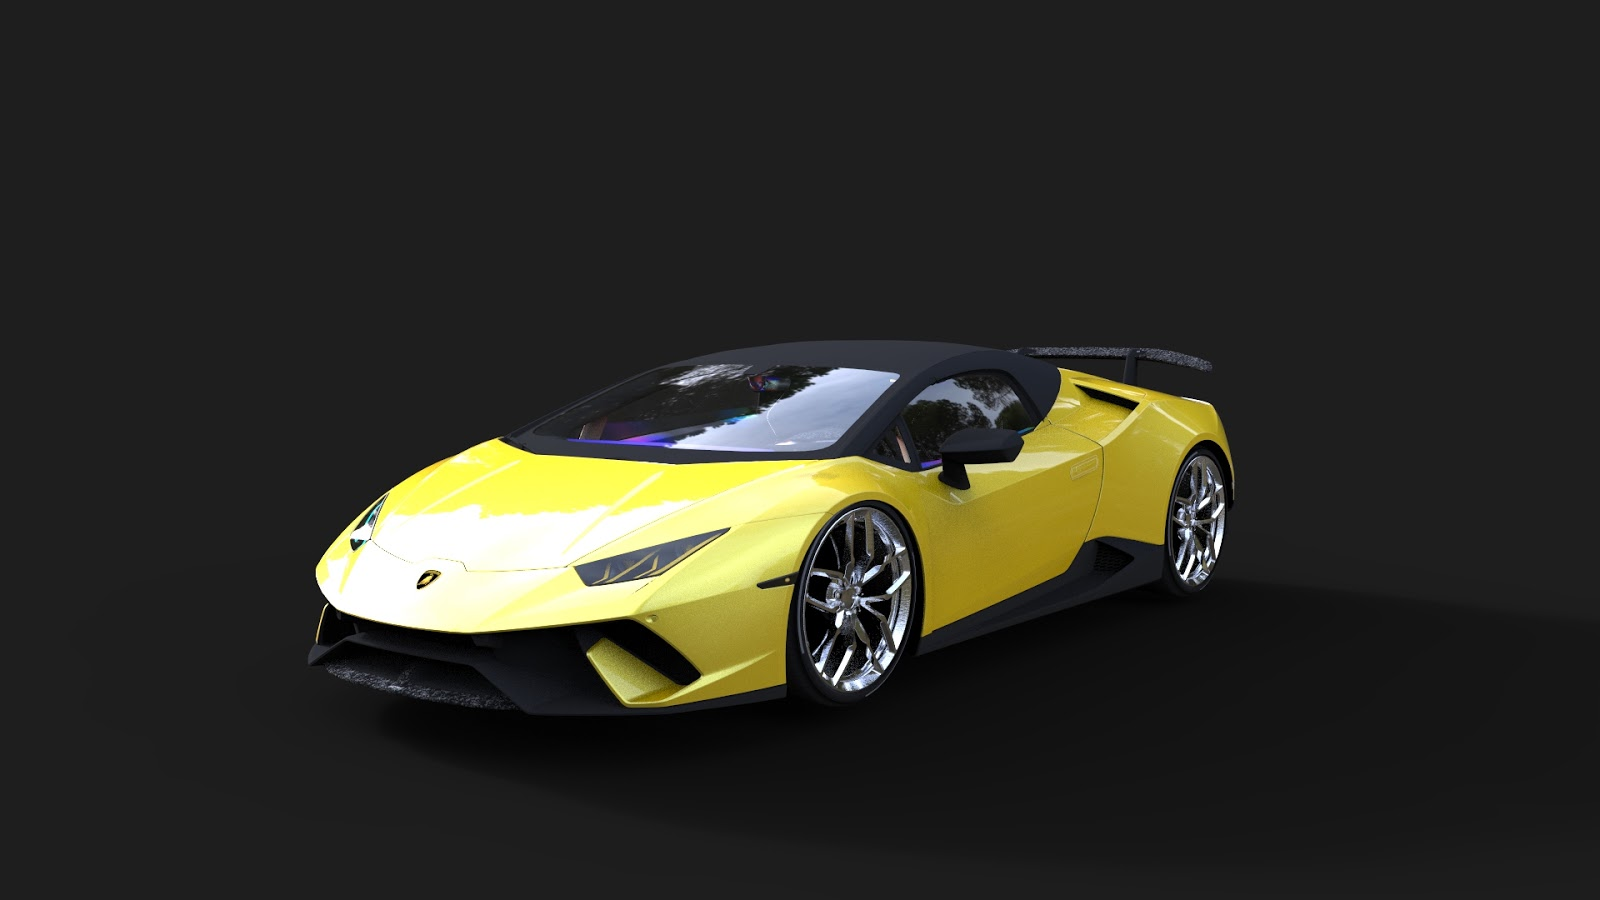 Download LAMBORGHINI HURACAN Mod for Bus Simulator Indonesia, LAMBORGHINI HURACAN, Bus Simulator Indonesia Mod, BUSSID mod, Car Mod, LAMBORGHINI HURACAN, Mod, Mod for BUSSID, SGCArena, Vehicle Mod, WSPMods